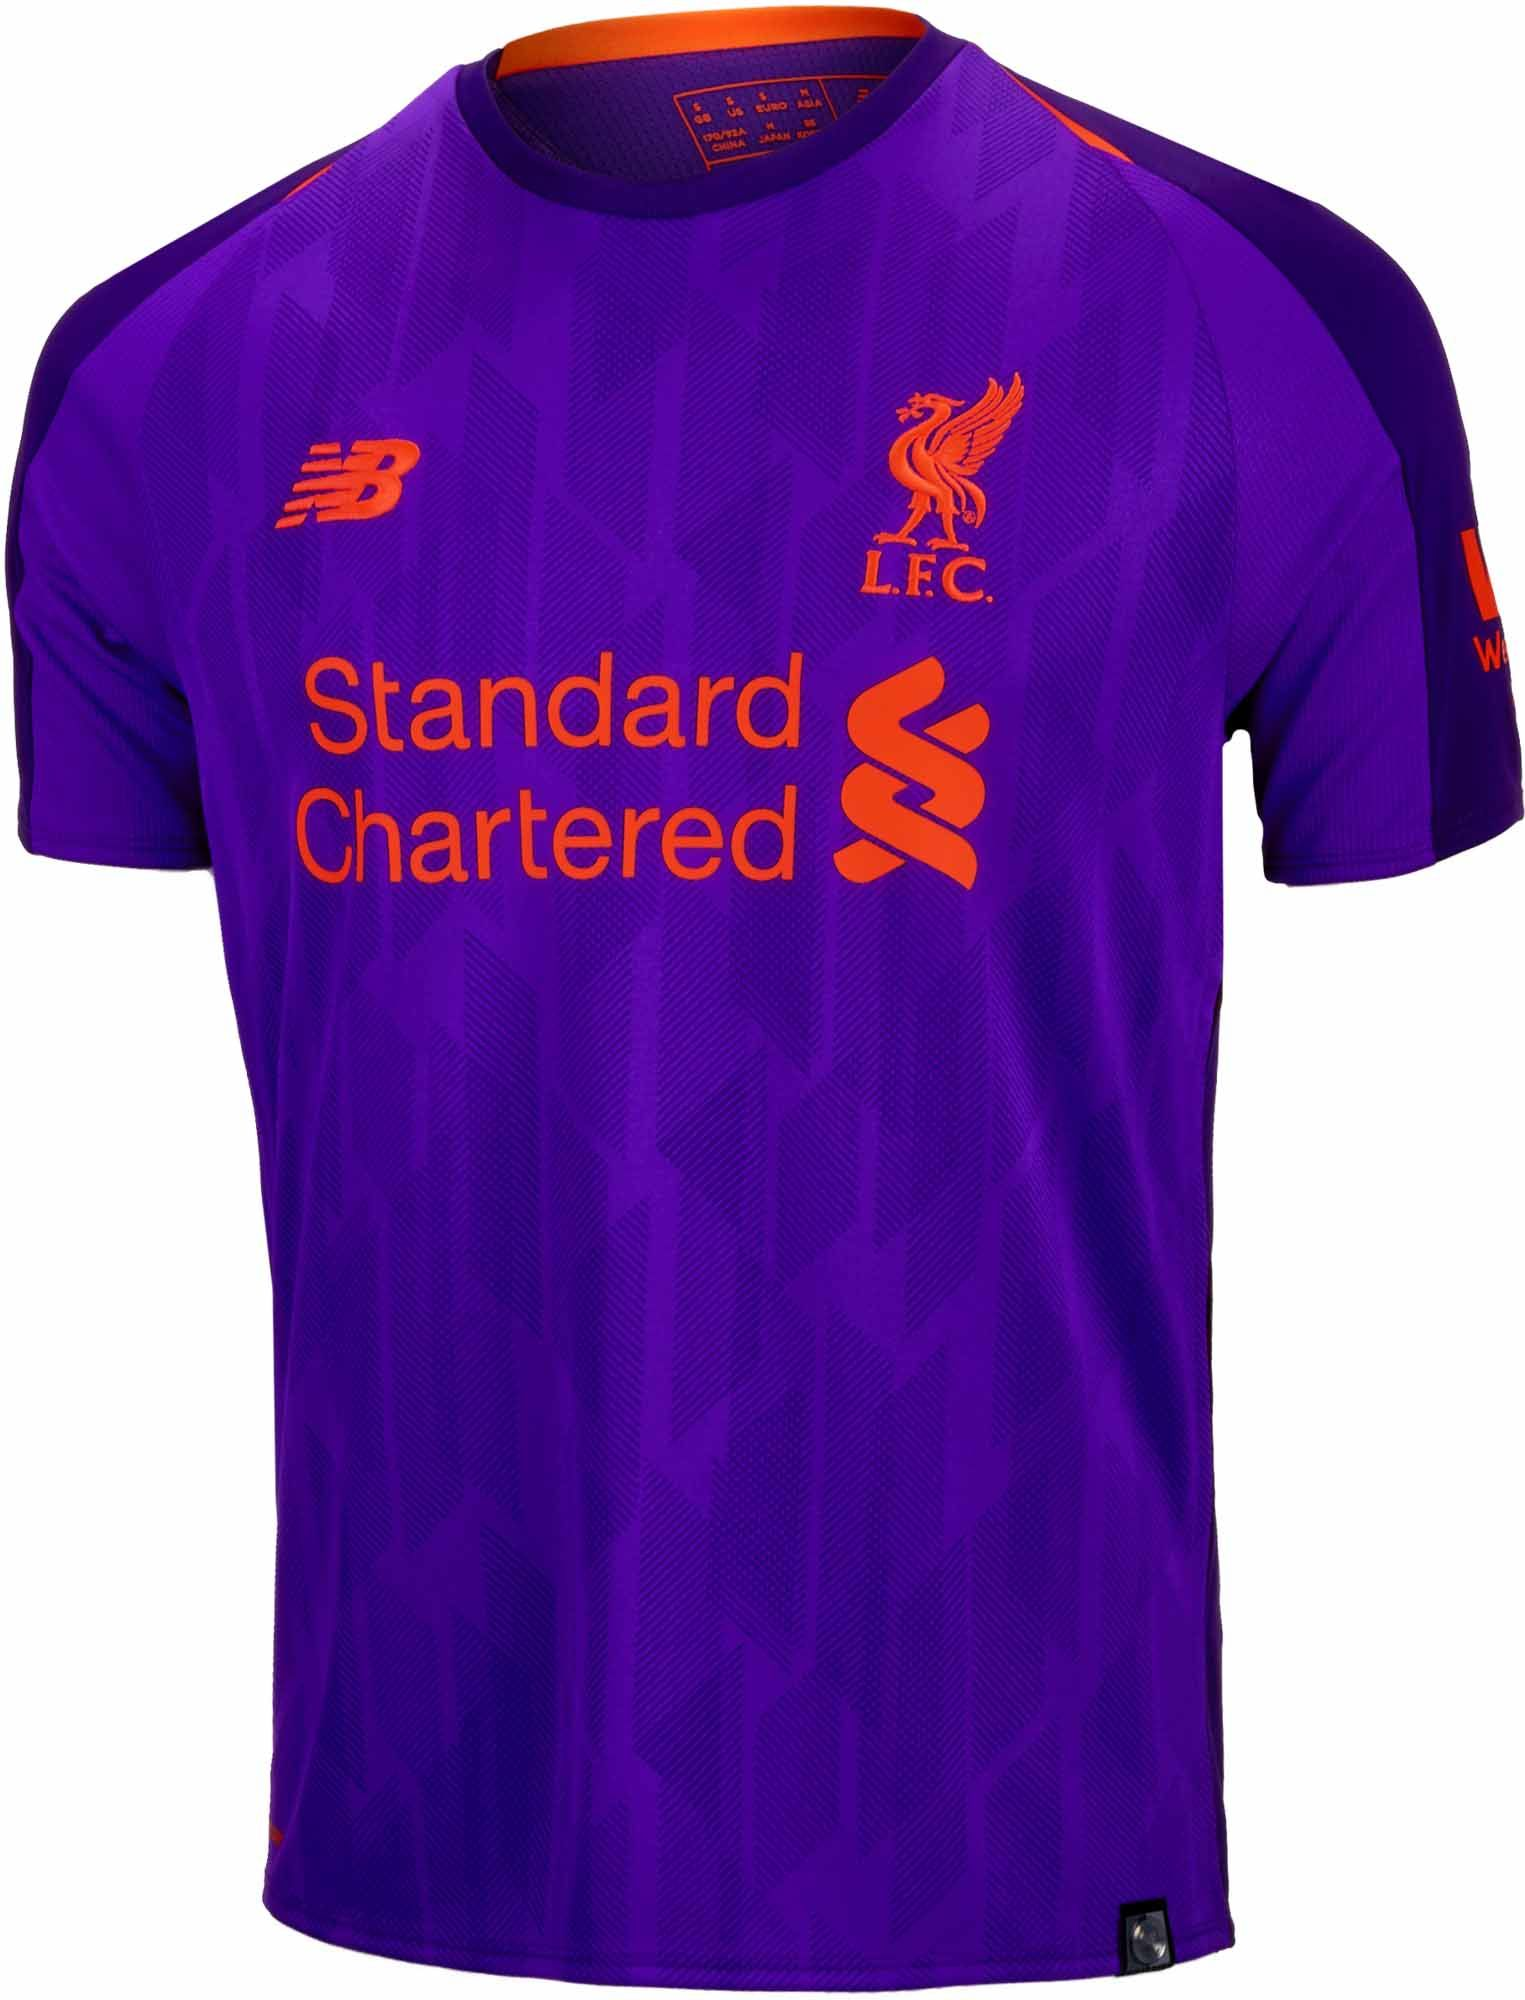 3f34bf096a6 2018 19 NB Liverpool FC Away Jersey. Buy it from www.soccerpro.com